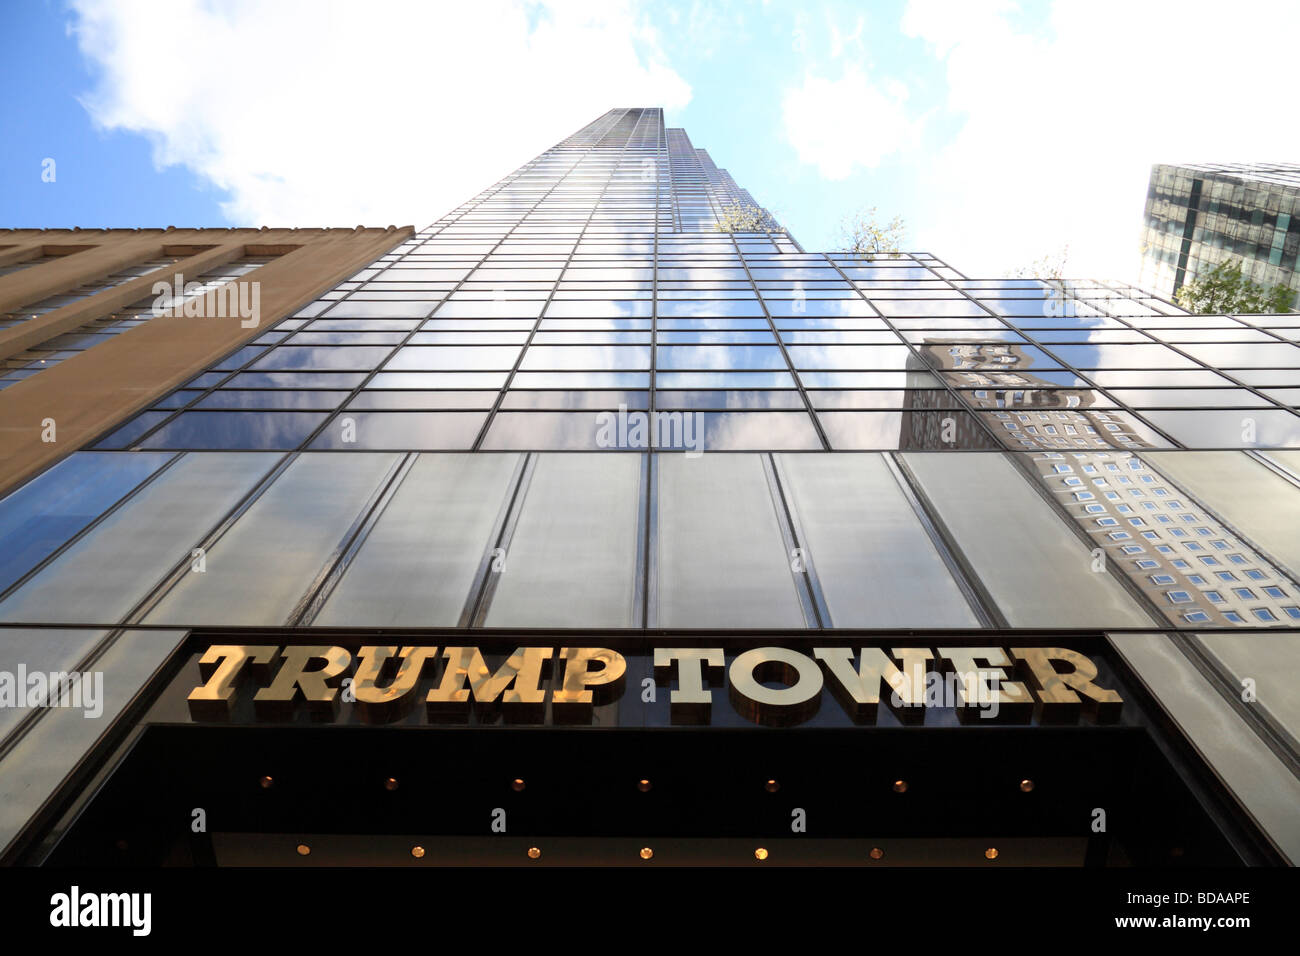 The Trump Tower, on Fifth Avenue New York, United States.  It is the setting for 'The Apprentice' television - Stock Image